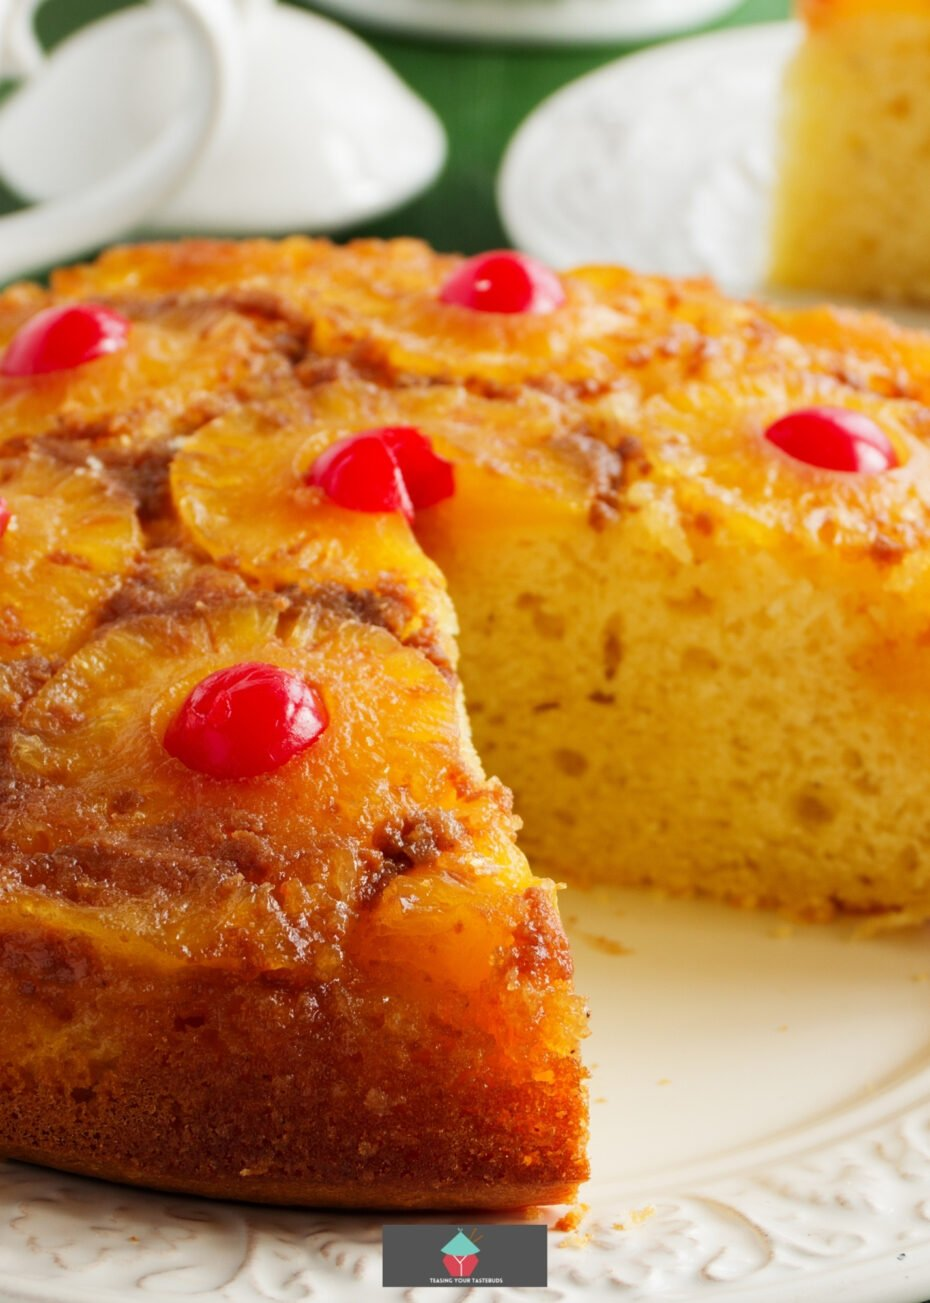 Crock Pot Pecan Pineapple Upside Down Cake, an easy slow cooker recipe for a classic Pineapple Upside Down Cake, for a soft cake. A popular family dessert!